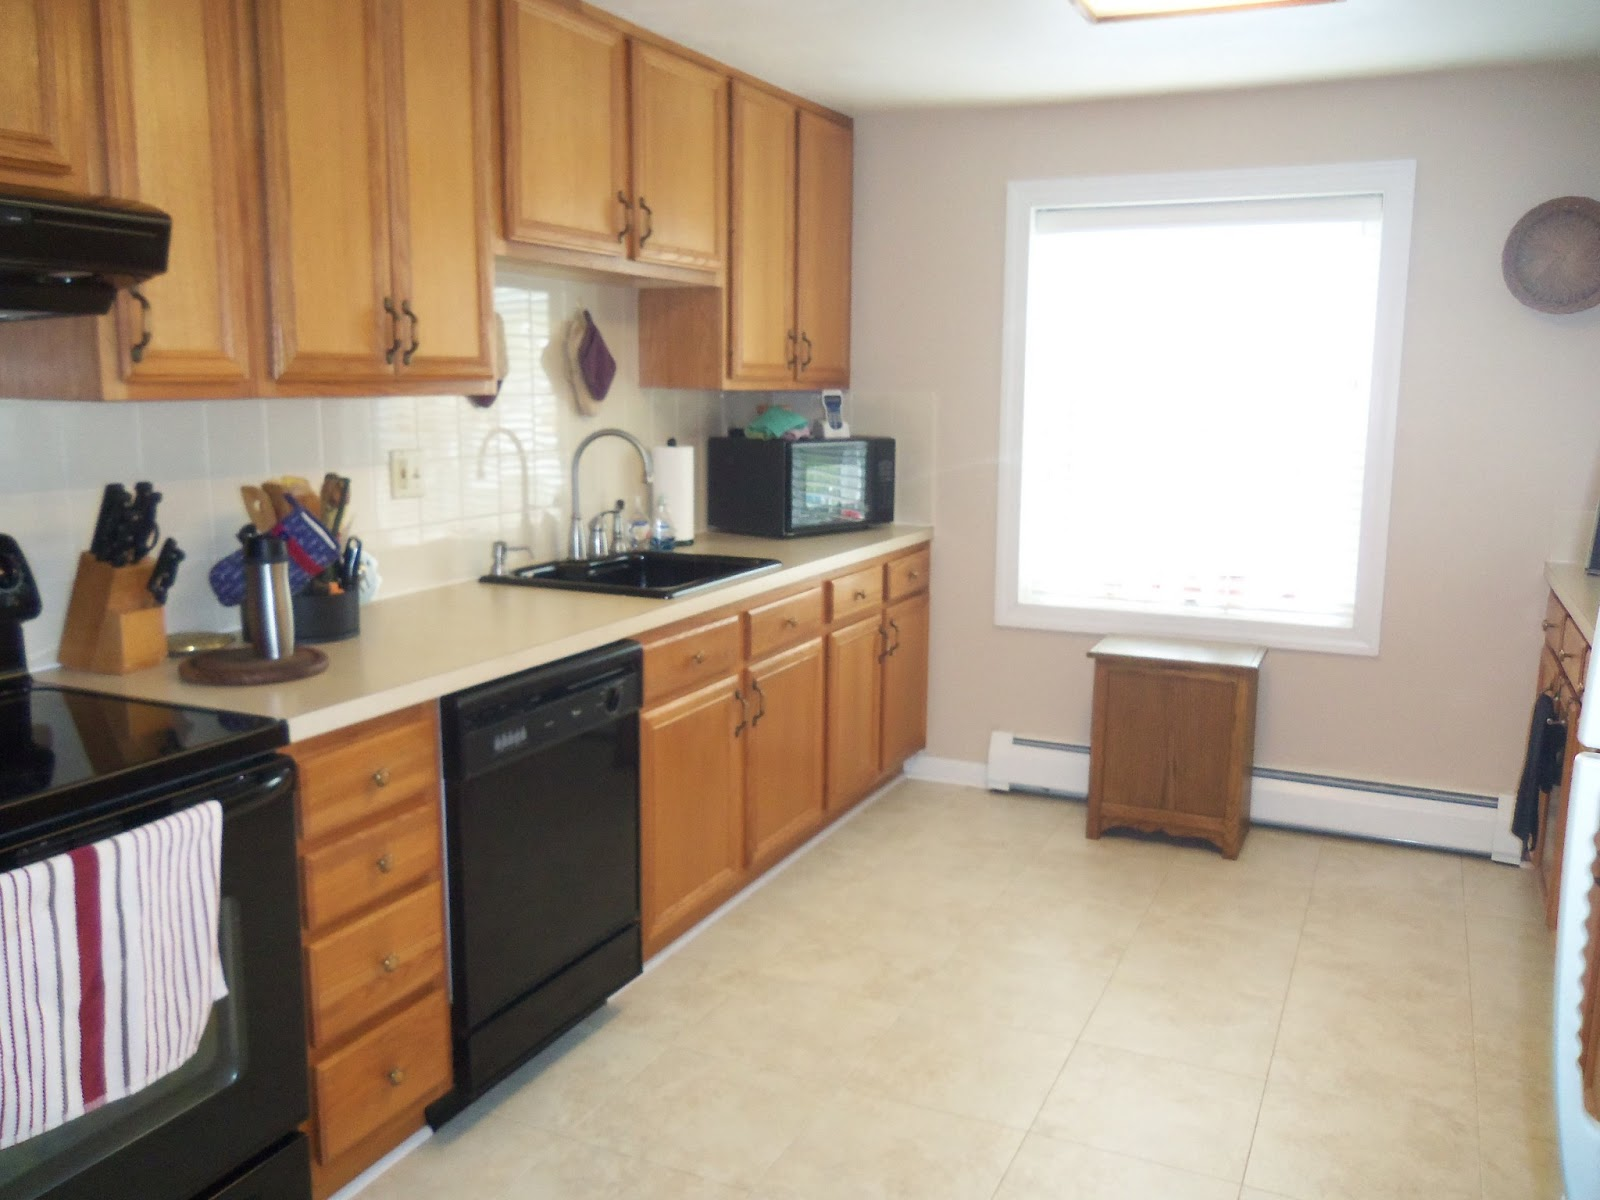 Wheelchair accessible home in fairless hills pa for sale for Wheelchair accessible housing